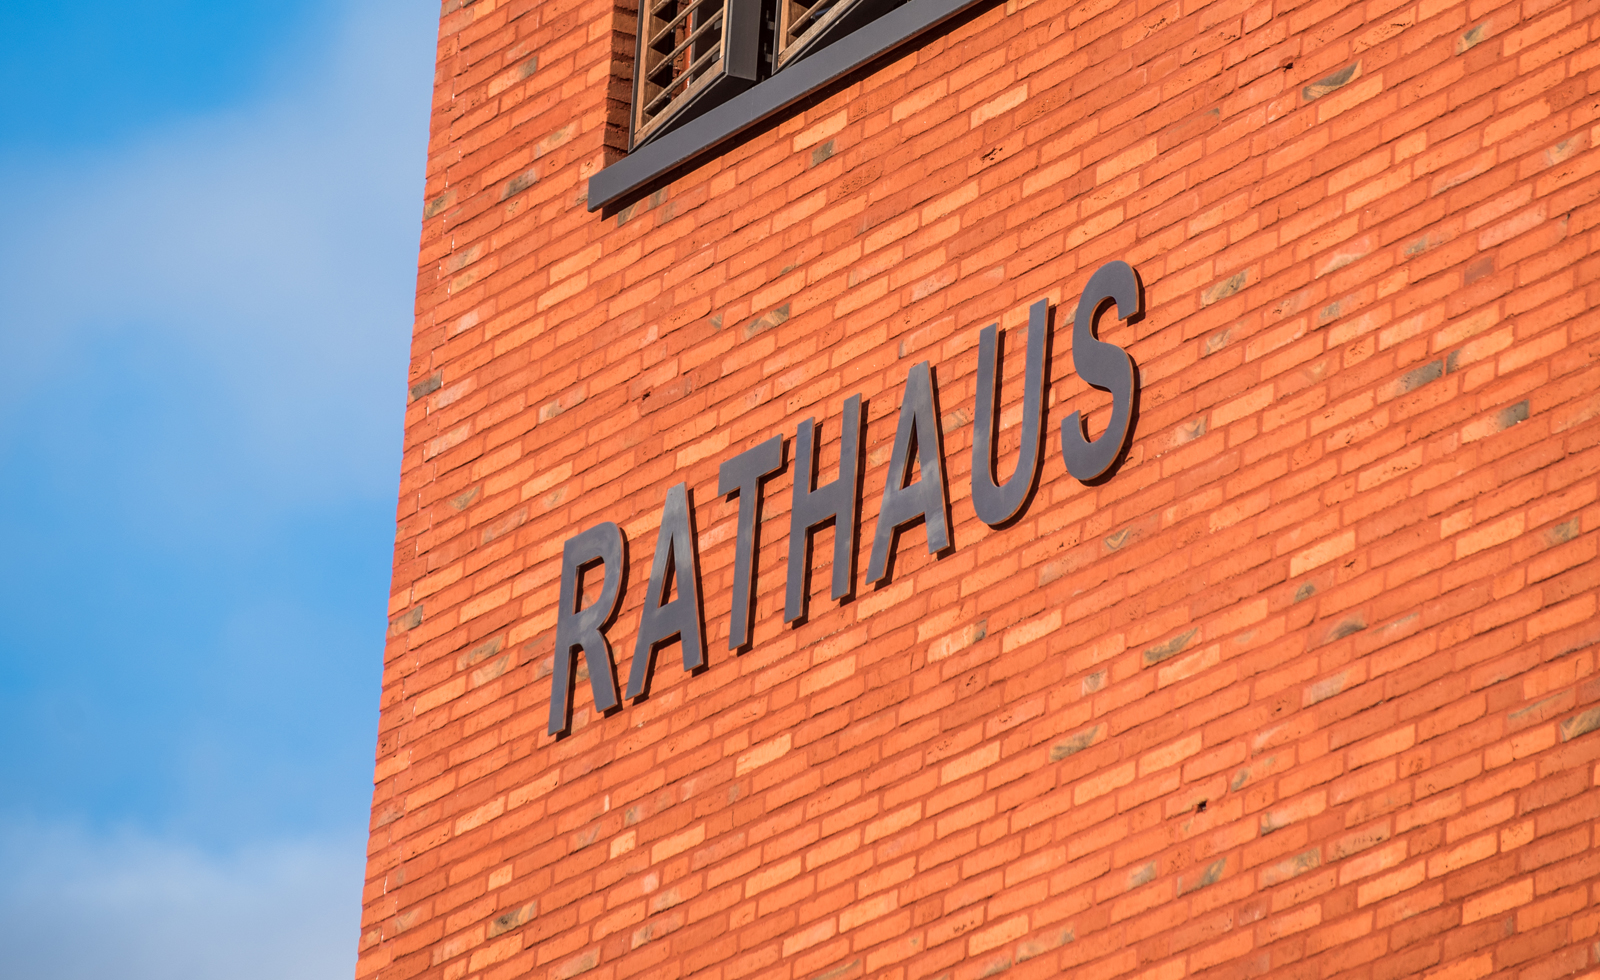 Rathausneubau in Eislingen/Fils